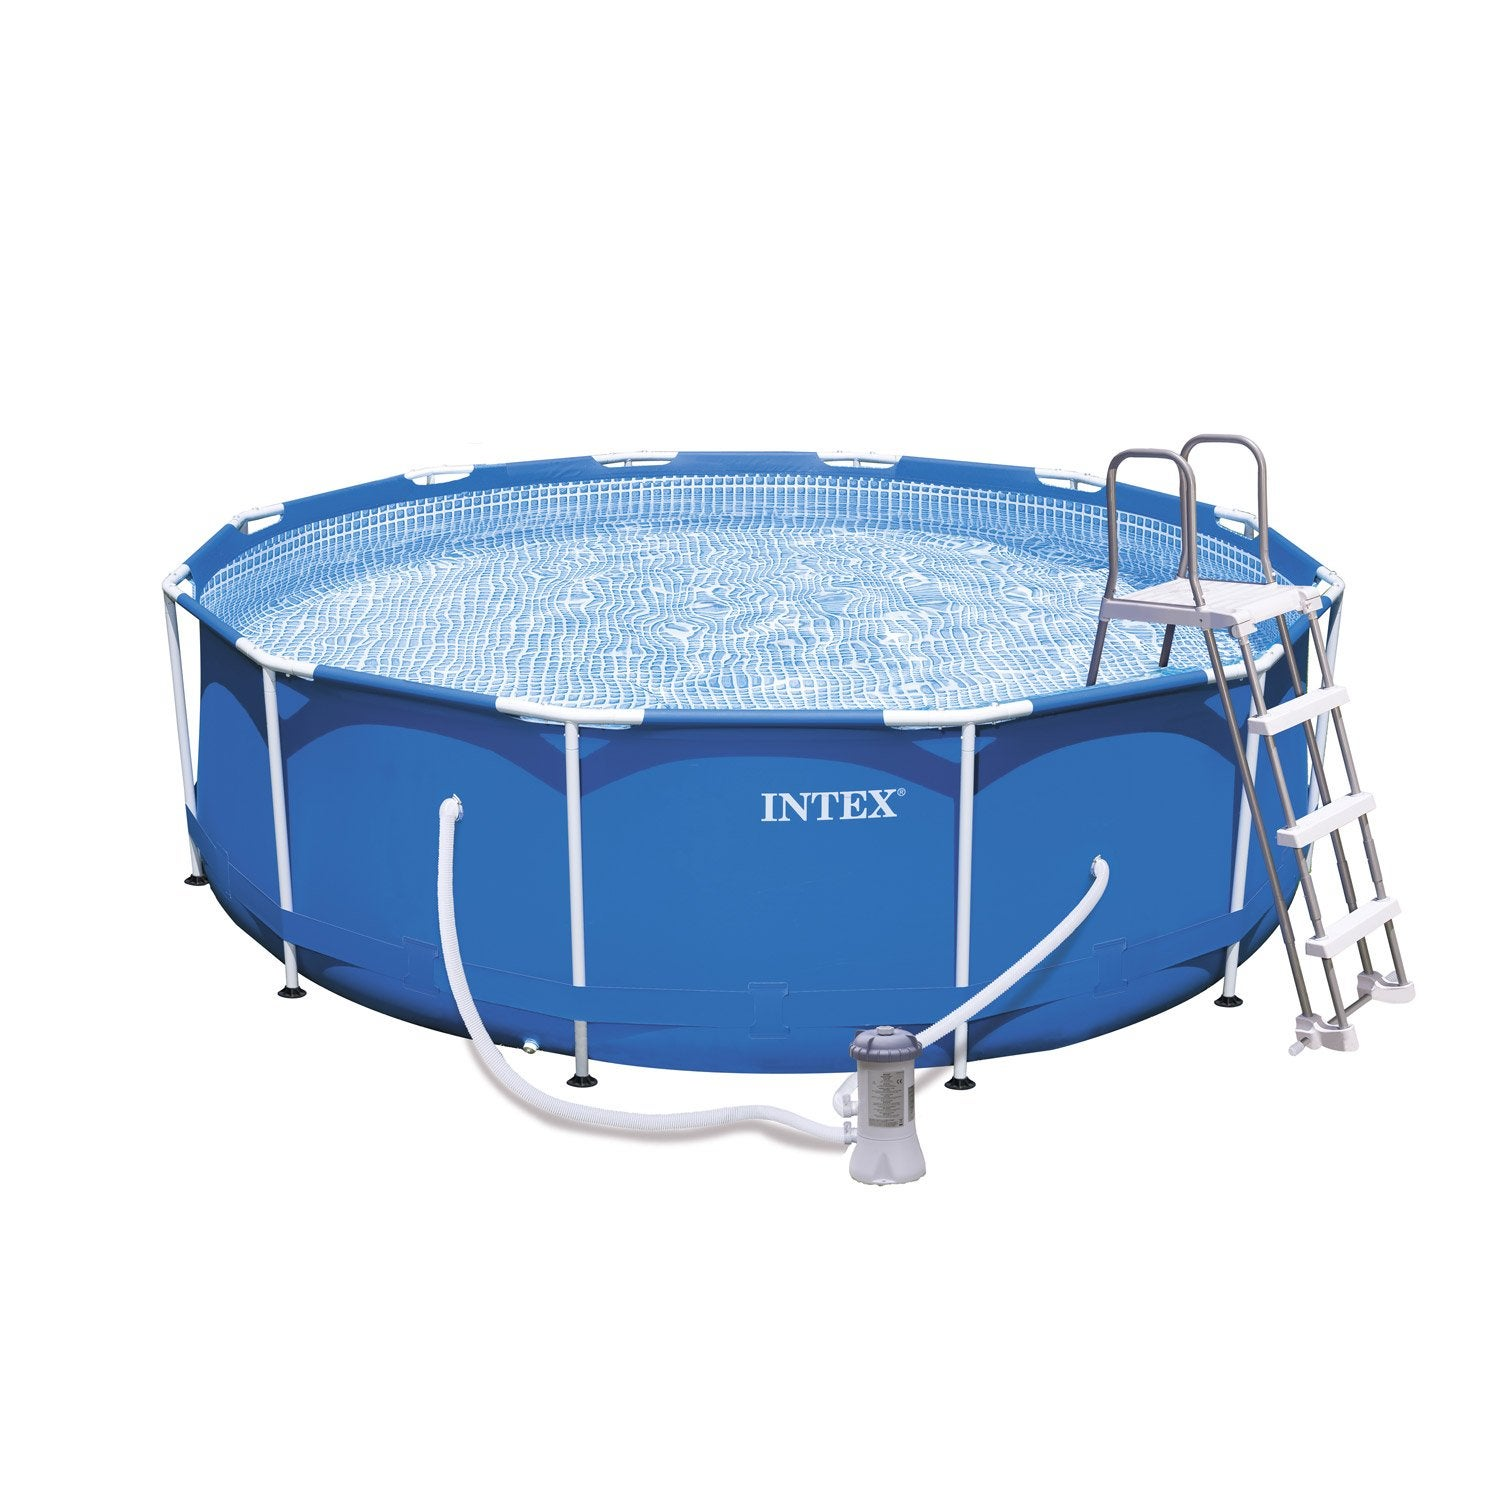 Piscine hors sol autoportante tubulaire m tal frame intex for Piscine tubulaire 3 66 x 0 99